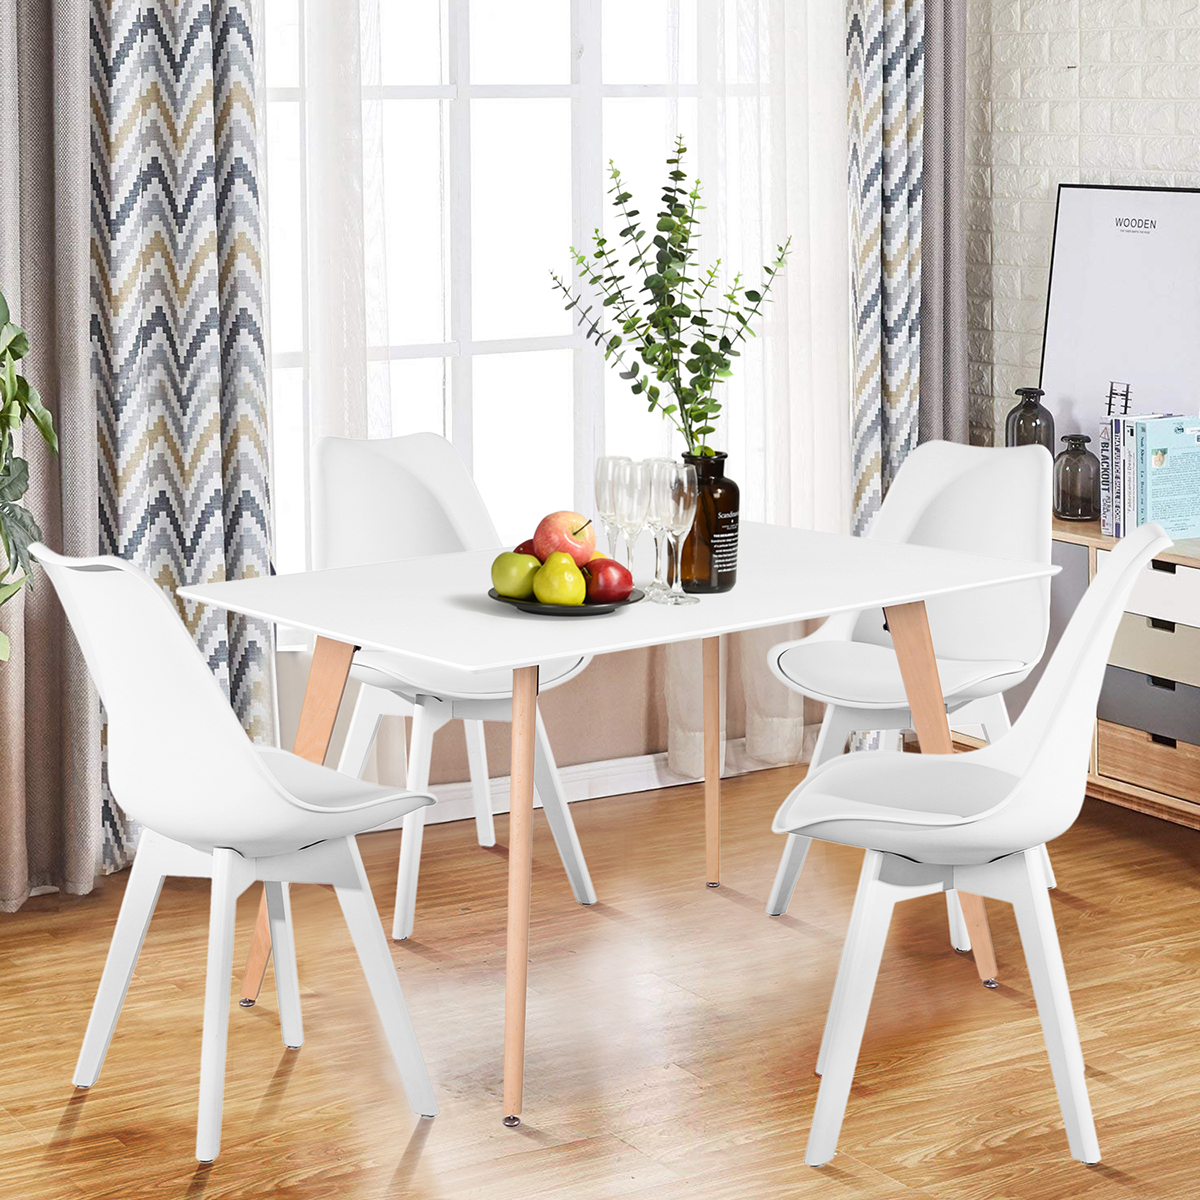 Wooden Oak White Dining Table Contemporary Kitchen Room ...